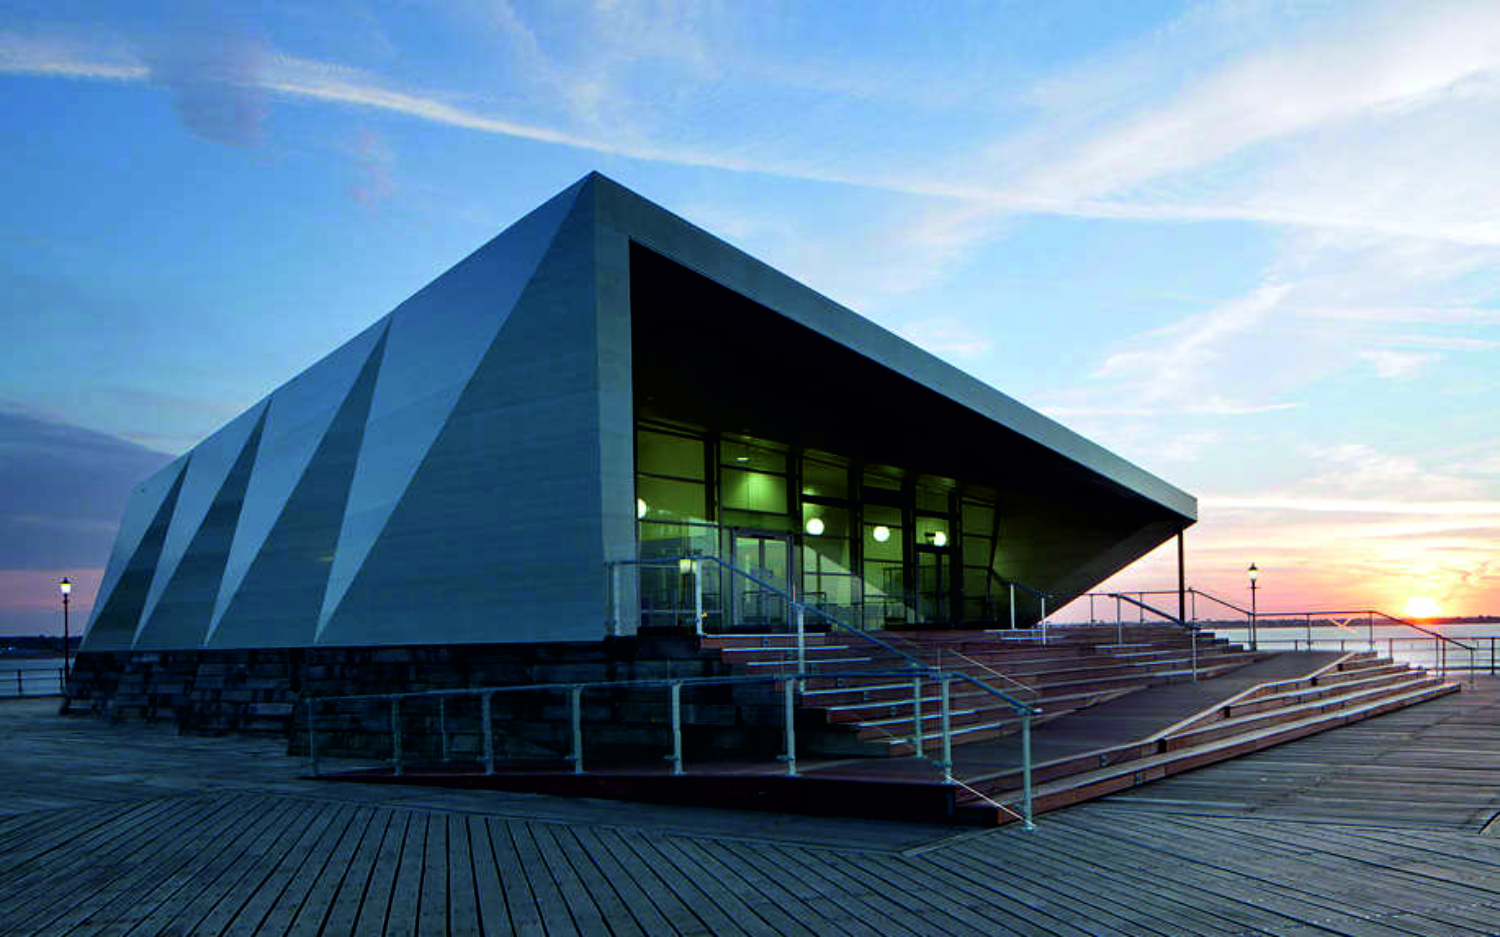 9 Clifftown Parade, Southend-on-Sea, Essex County SS1 1DP, Regno Unito: [CULTURAL CENTRE BY WHITE ARKITEKTER]